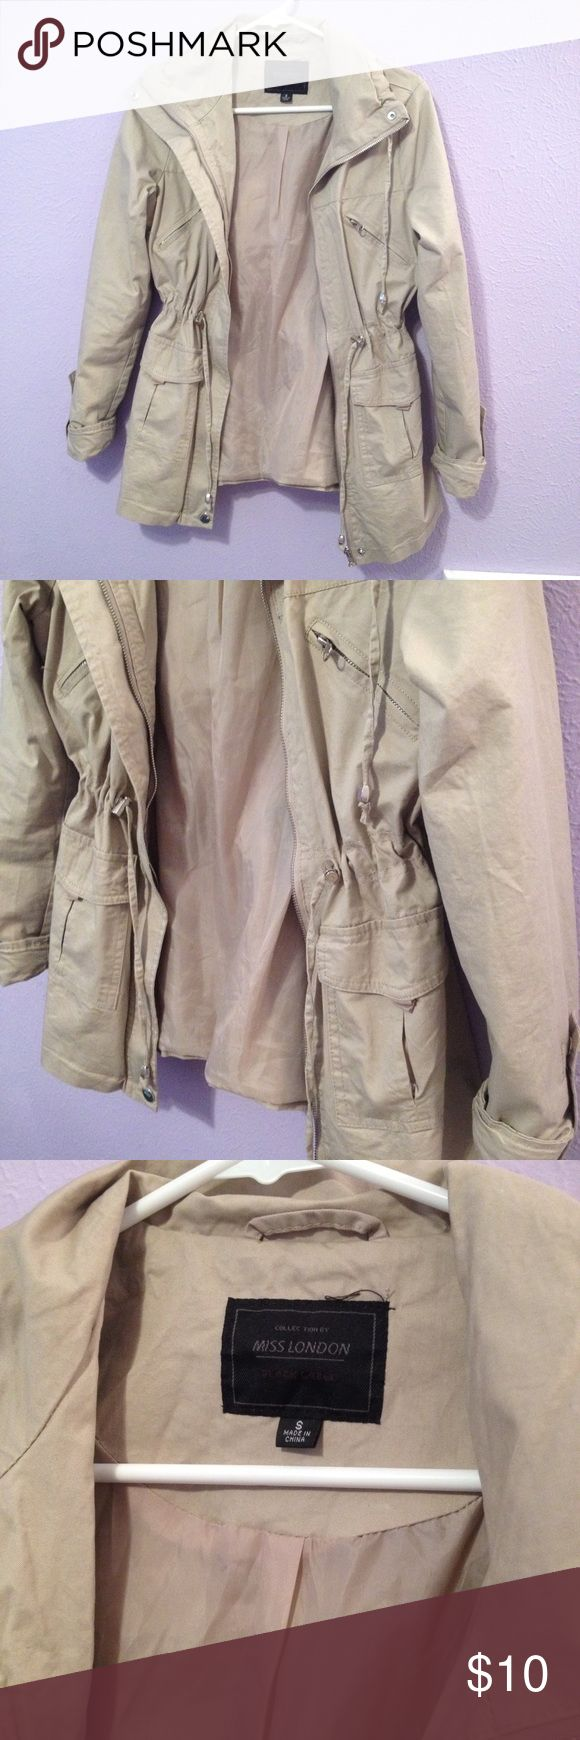 Women's Tan Military Style/ Utility Jacket Perfect condition, worn once! Fits true to size! NO TRADES :) Miss London Jackets & Coats Utility Jackets